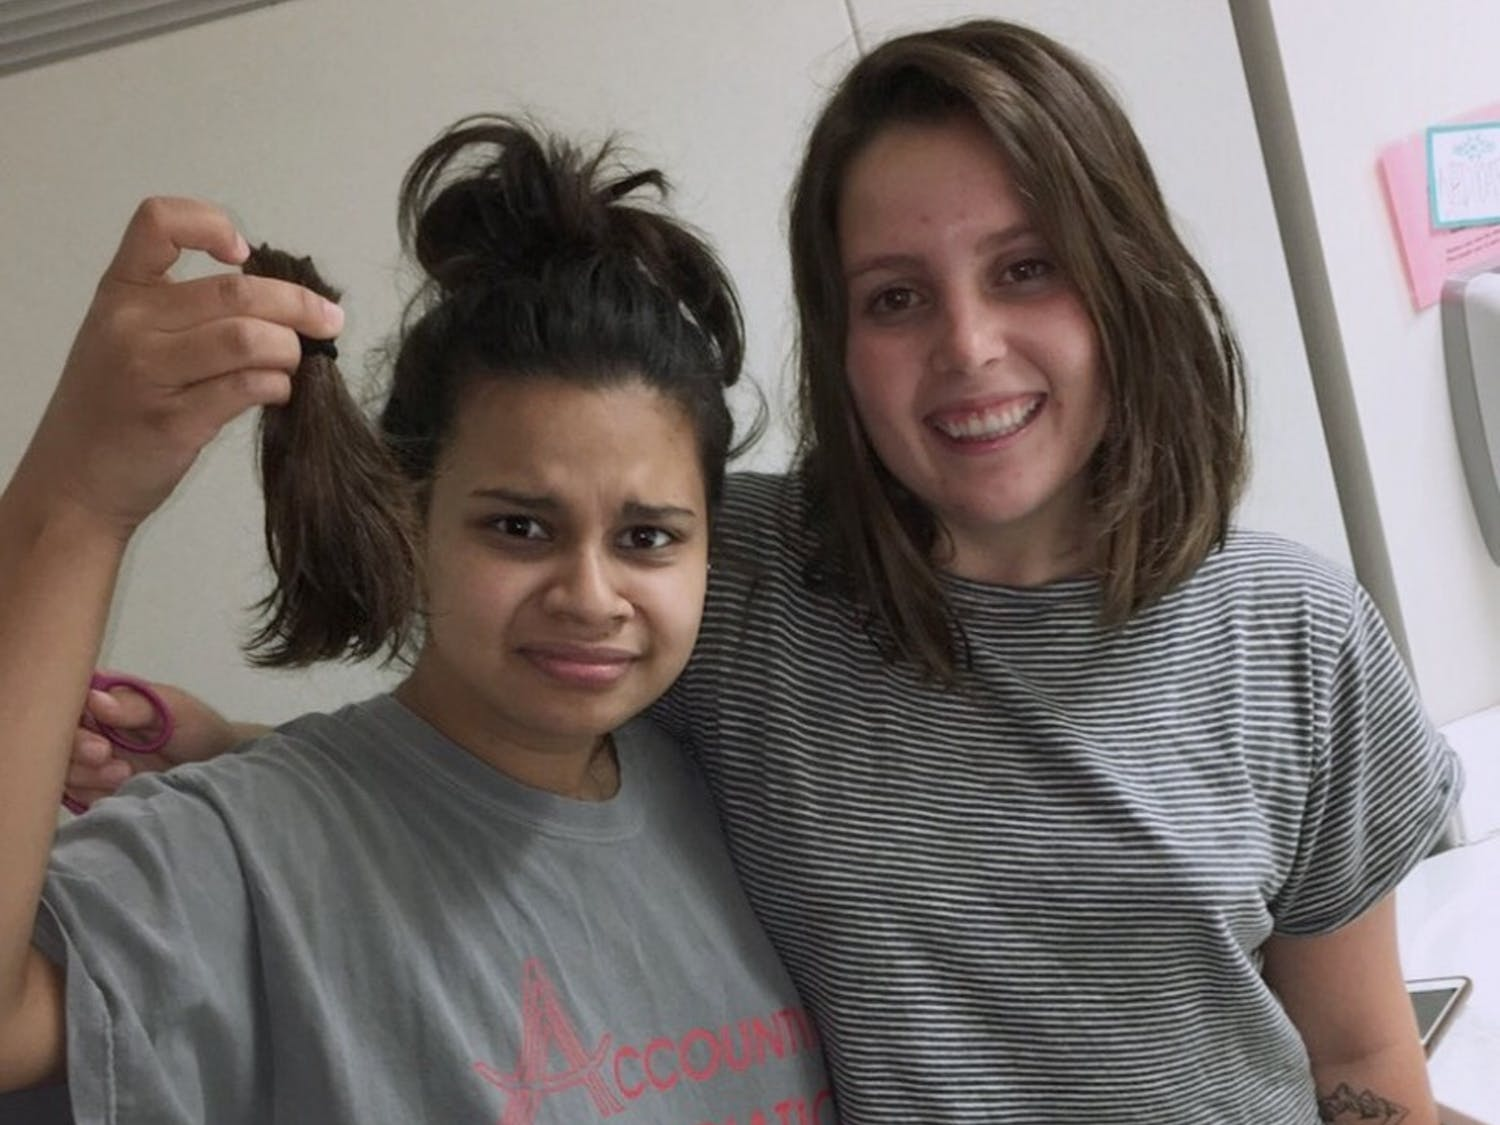 Kate Rice (right) is one of many UNC students who have had their hair cut by a friend. Photo courtesy of Kate Rice.